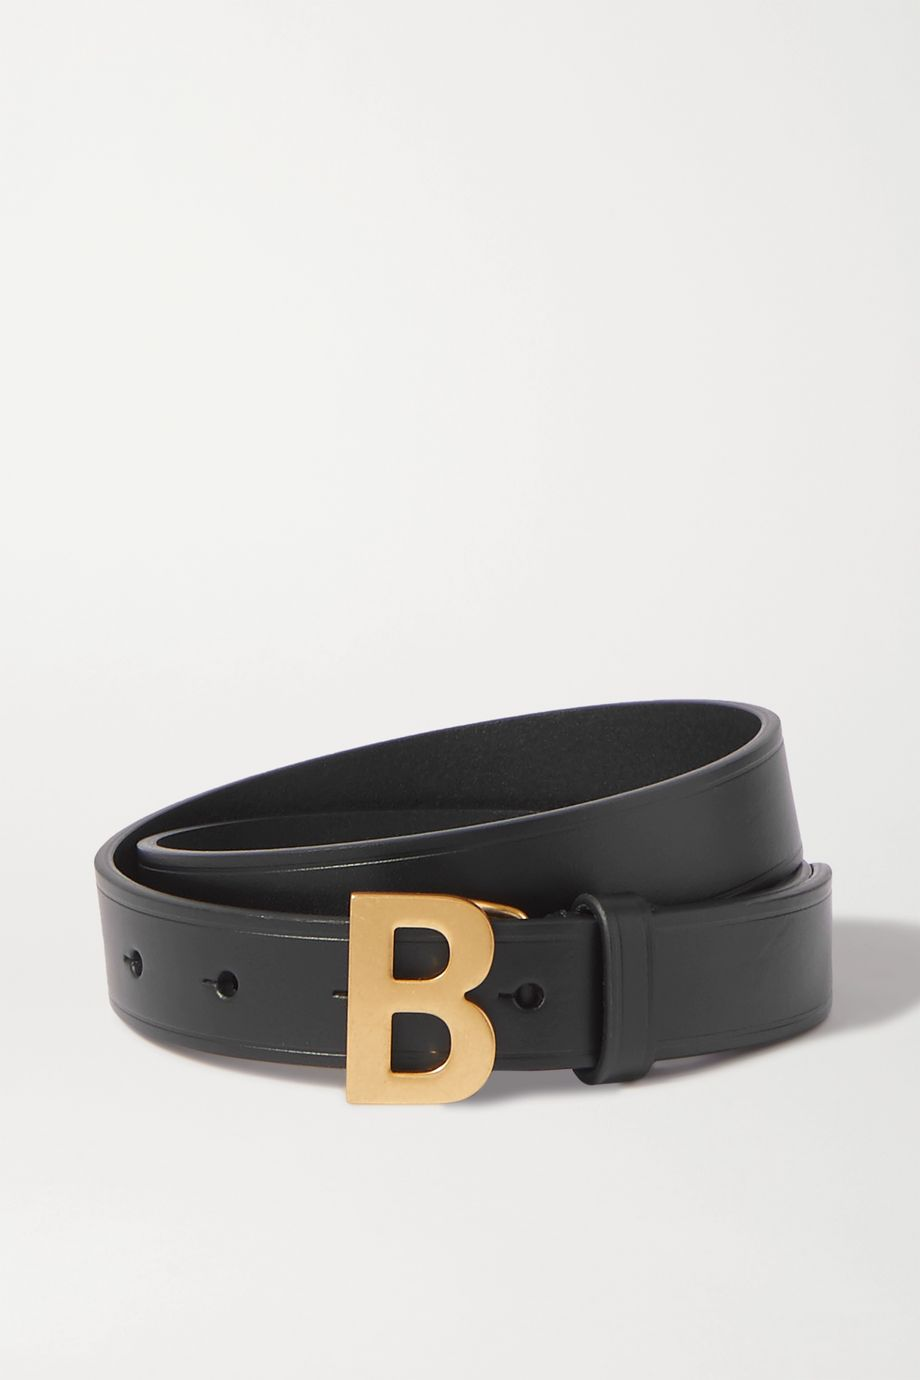 Balenciaga B leather waist belt